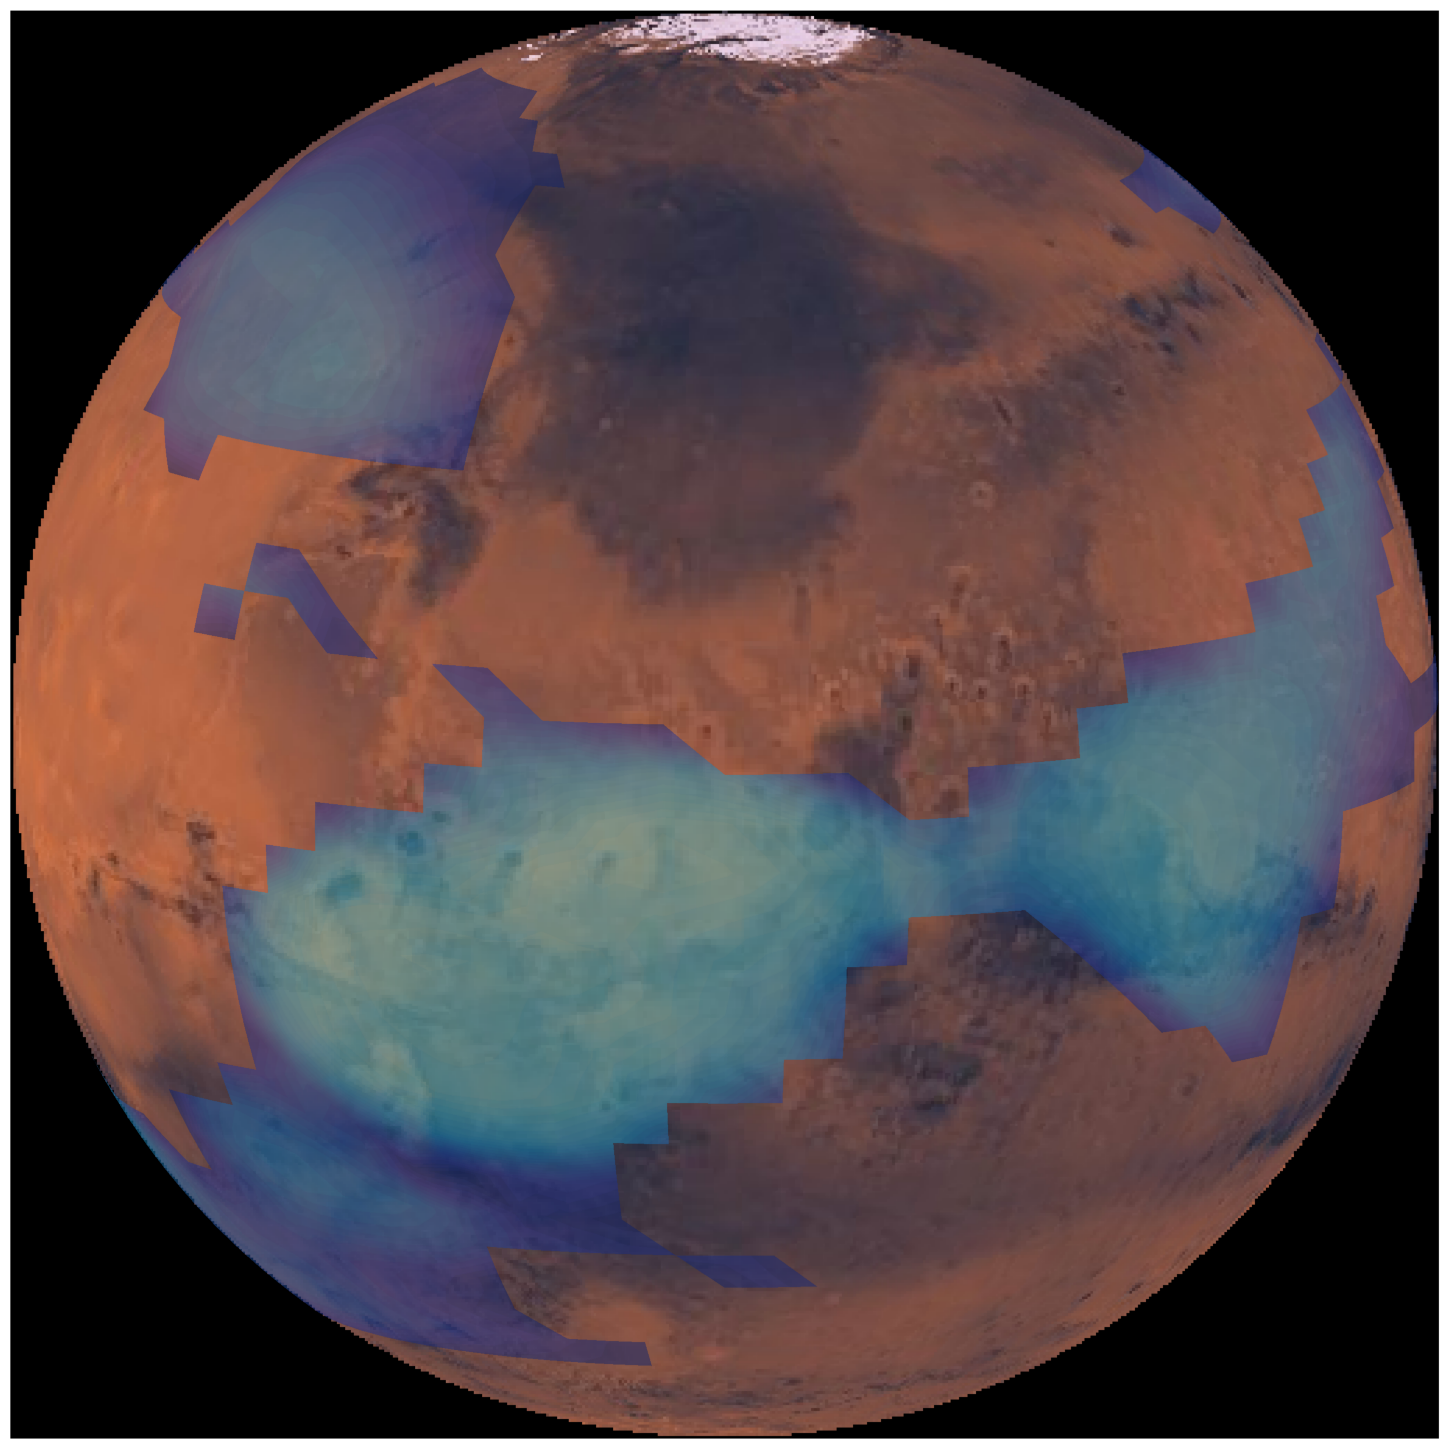 """<p><span style=""""color: rgb(34, 34, 34); font-family: Arial, Helvetica, sans-serif; font-size: small; background-color: rgb(255, 255, 255);"""">Acomputer simulation showing Mars' middle-atmosphericclouds.</span></p>"""